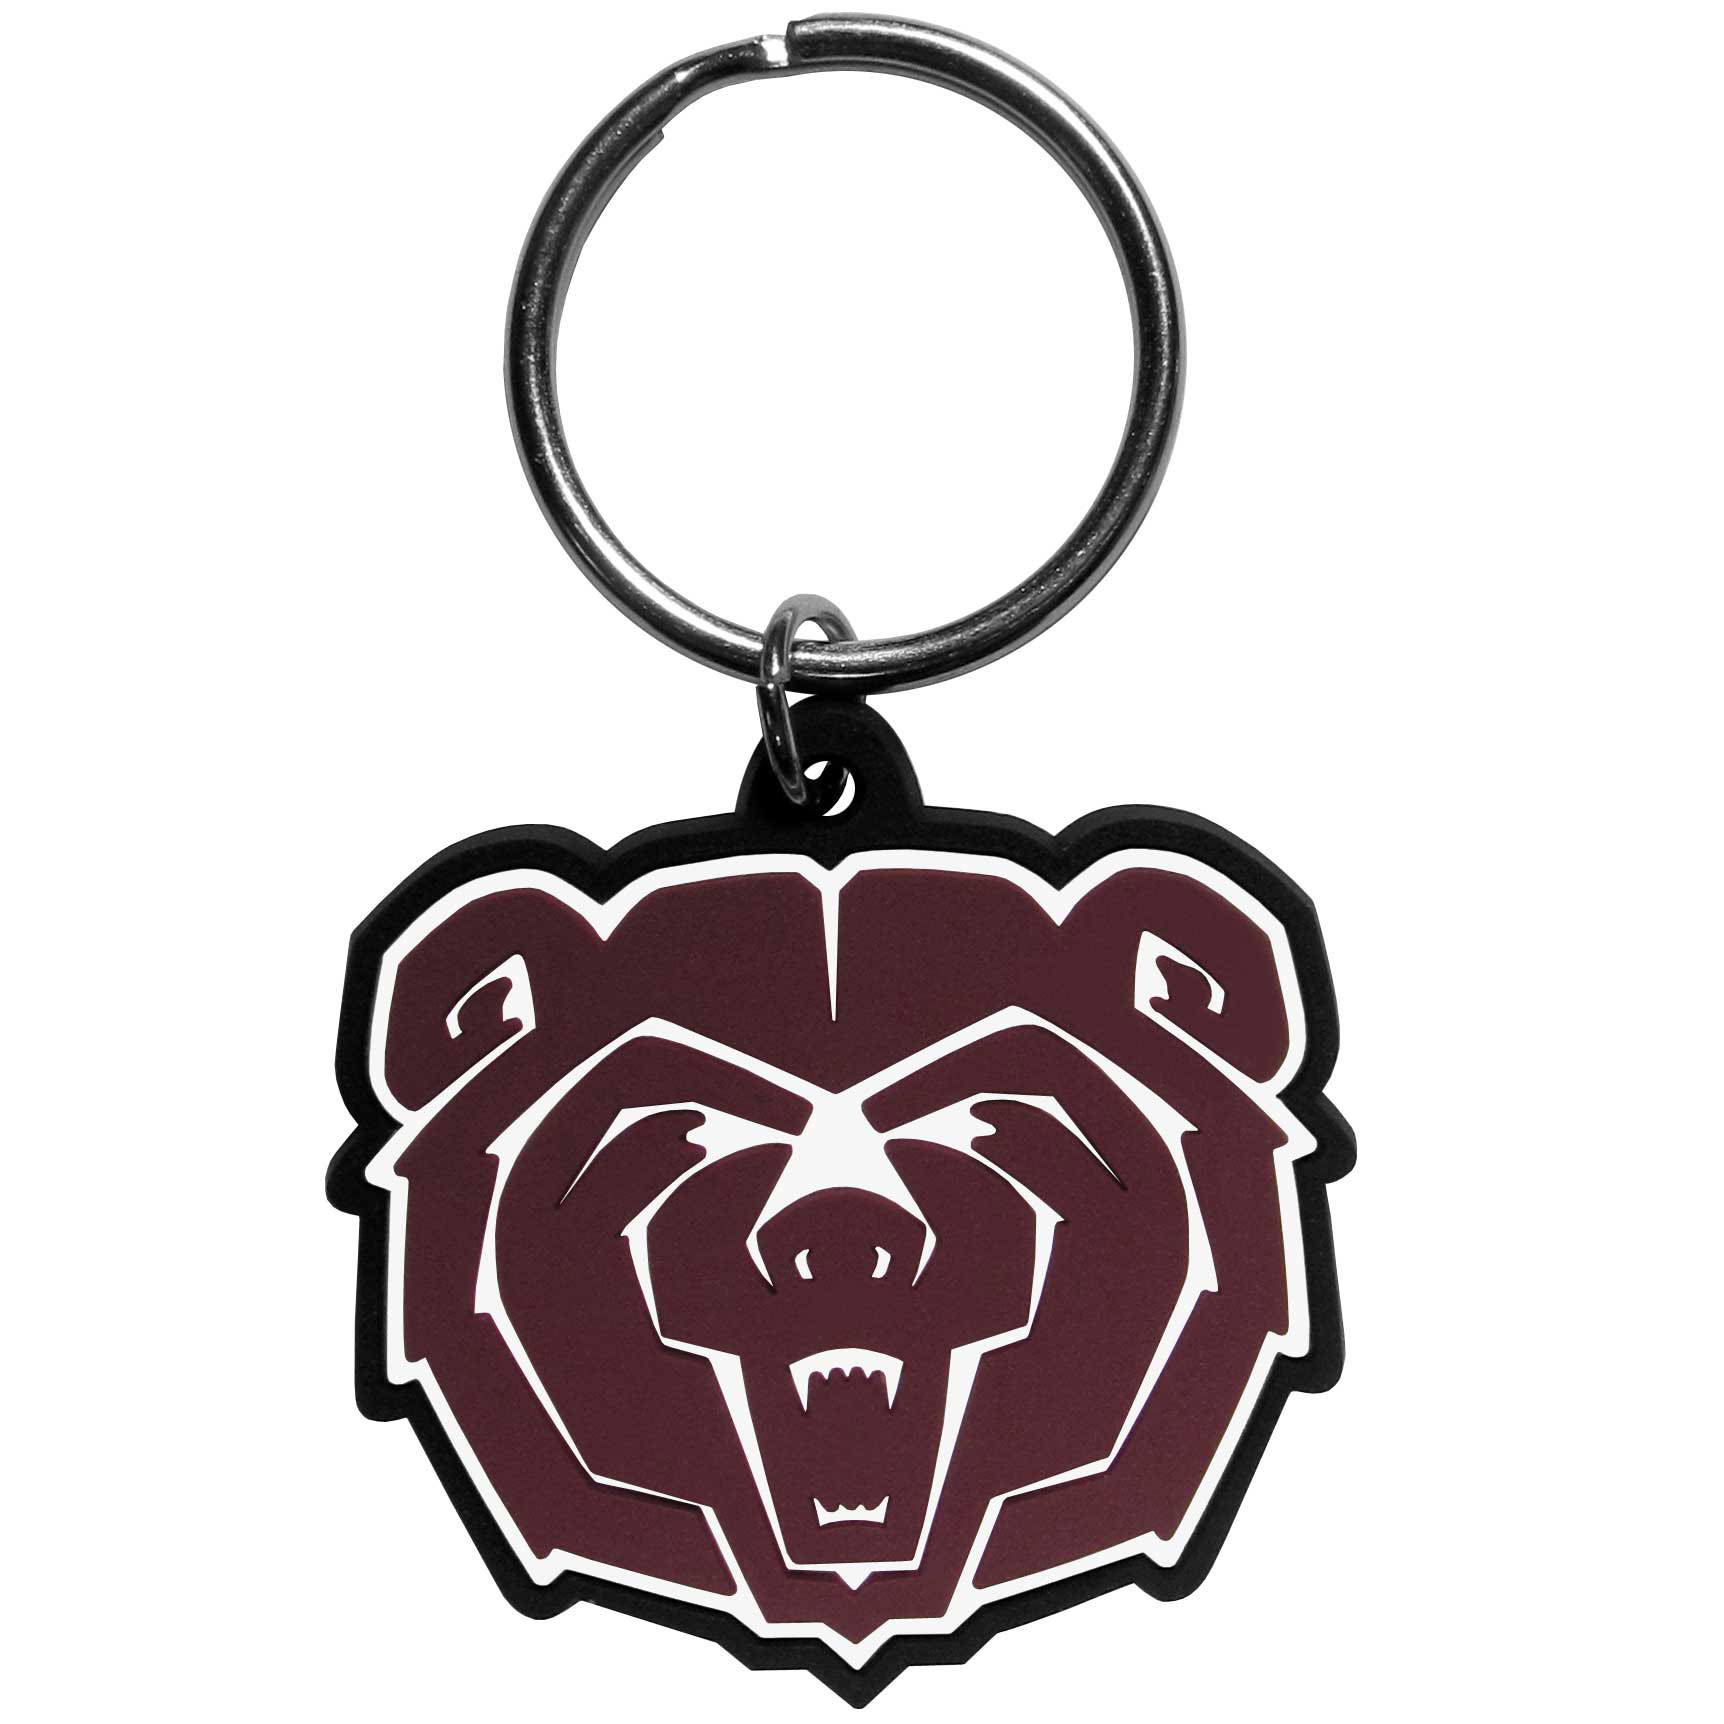 Missouri St. Bears Flex Key Chain - Our fun, flexible  key chains are made of a rubbery material that is layered to create a bright, textured logo.